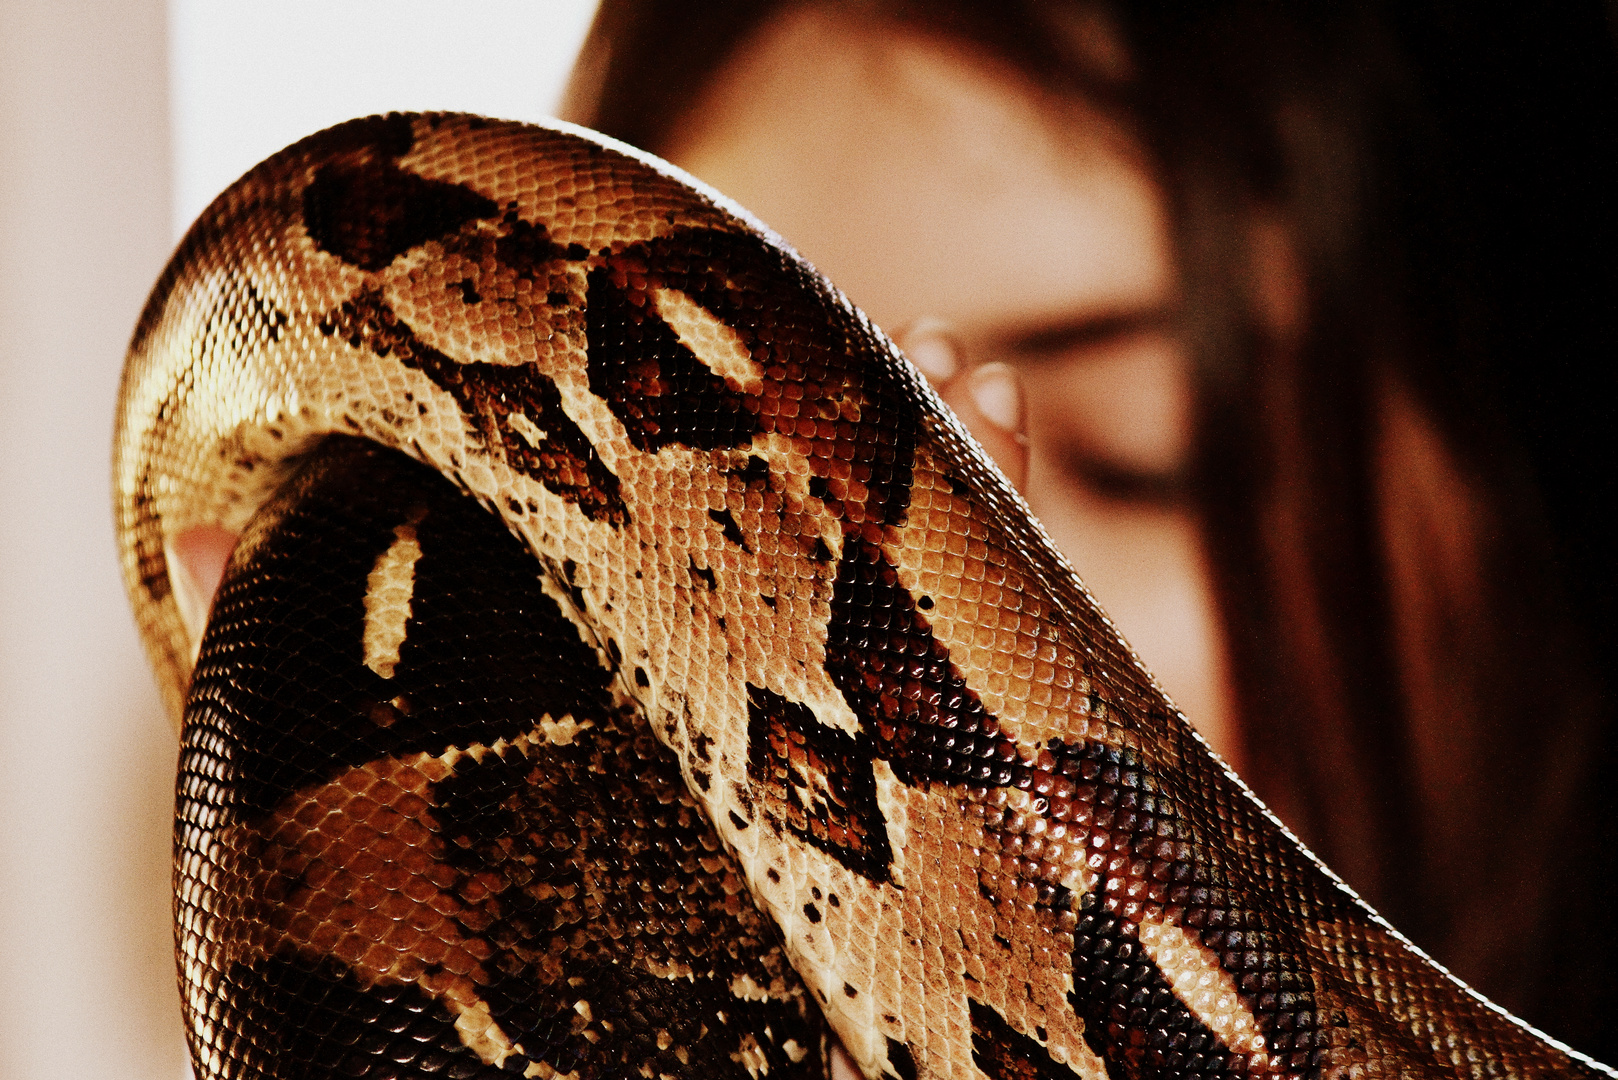 Behind the snake